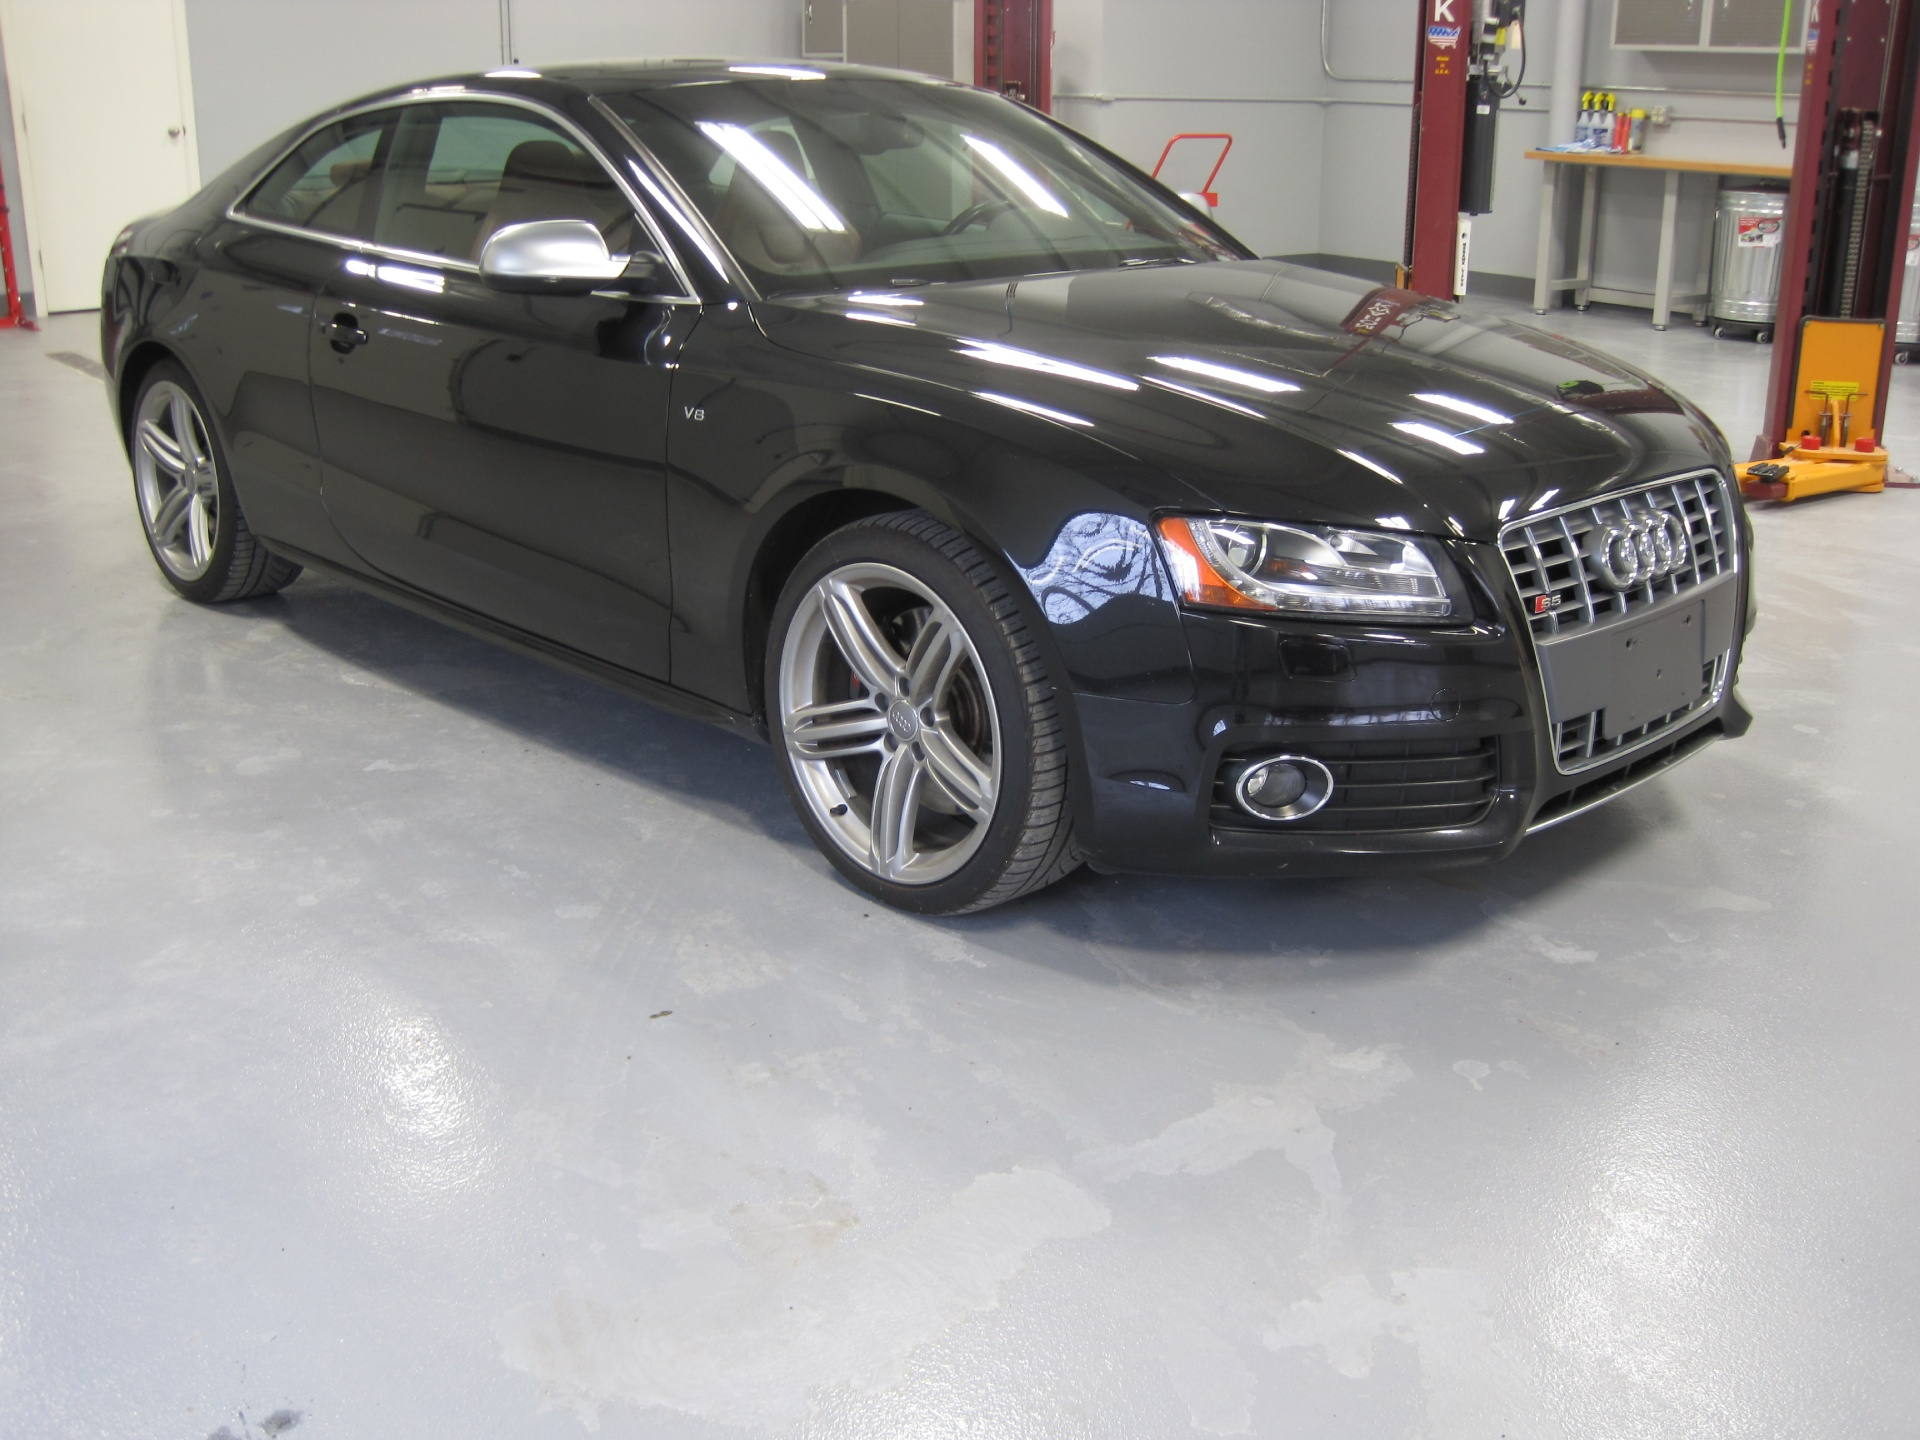 audi img super premier cars gallery used car list bayly in dealership street charged